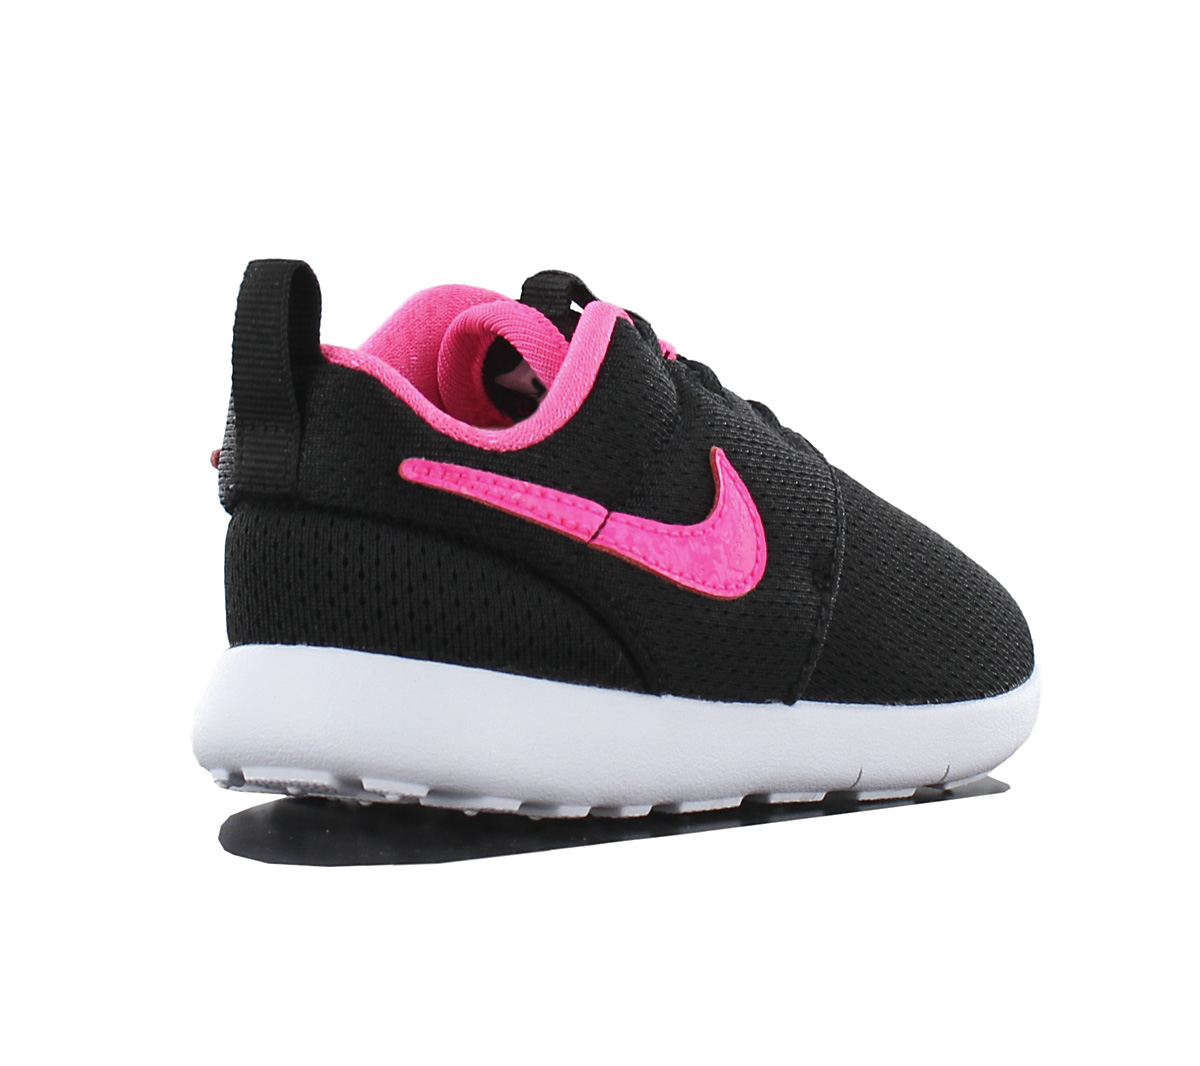 96fa09e1edf7 Nike Roshe One Tdv Childrens Shoes Toddler Baby Girl Black 749425 ...